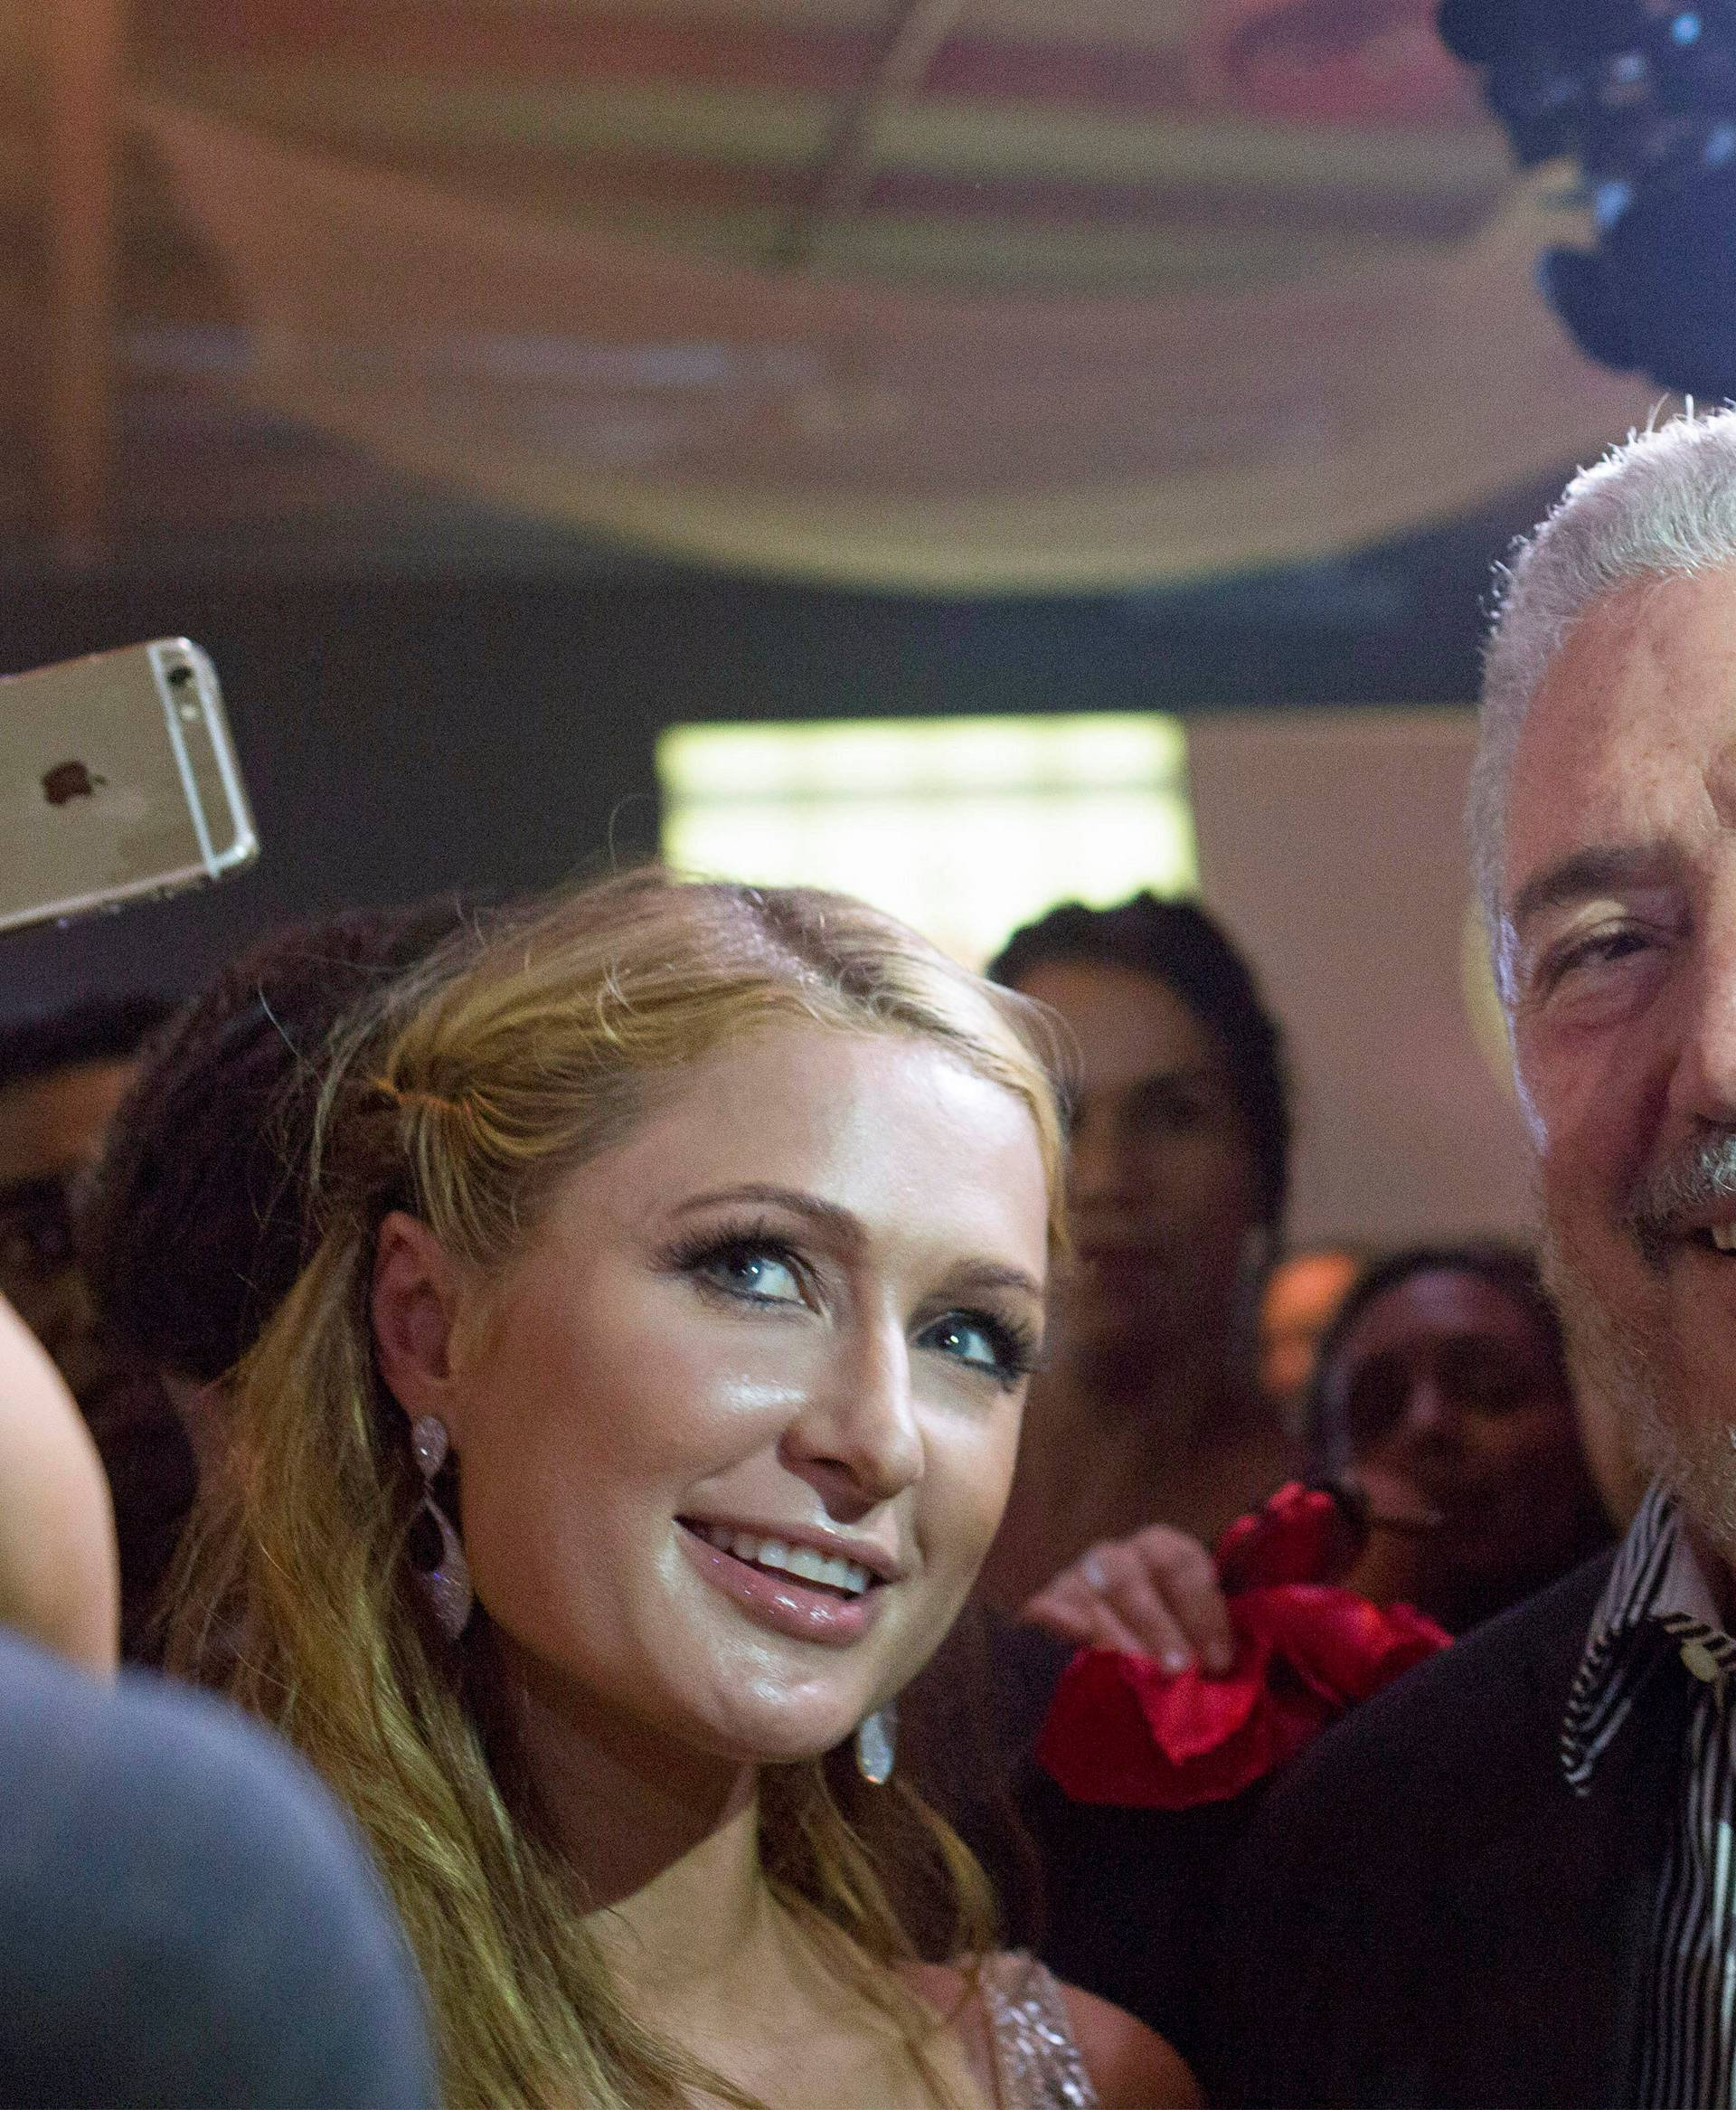 FILE PHOTO: Fidel Castro Diaz-Balart poses with Hilton during the gala dinner of the XVII Habanos Festival, in Havana